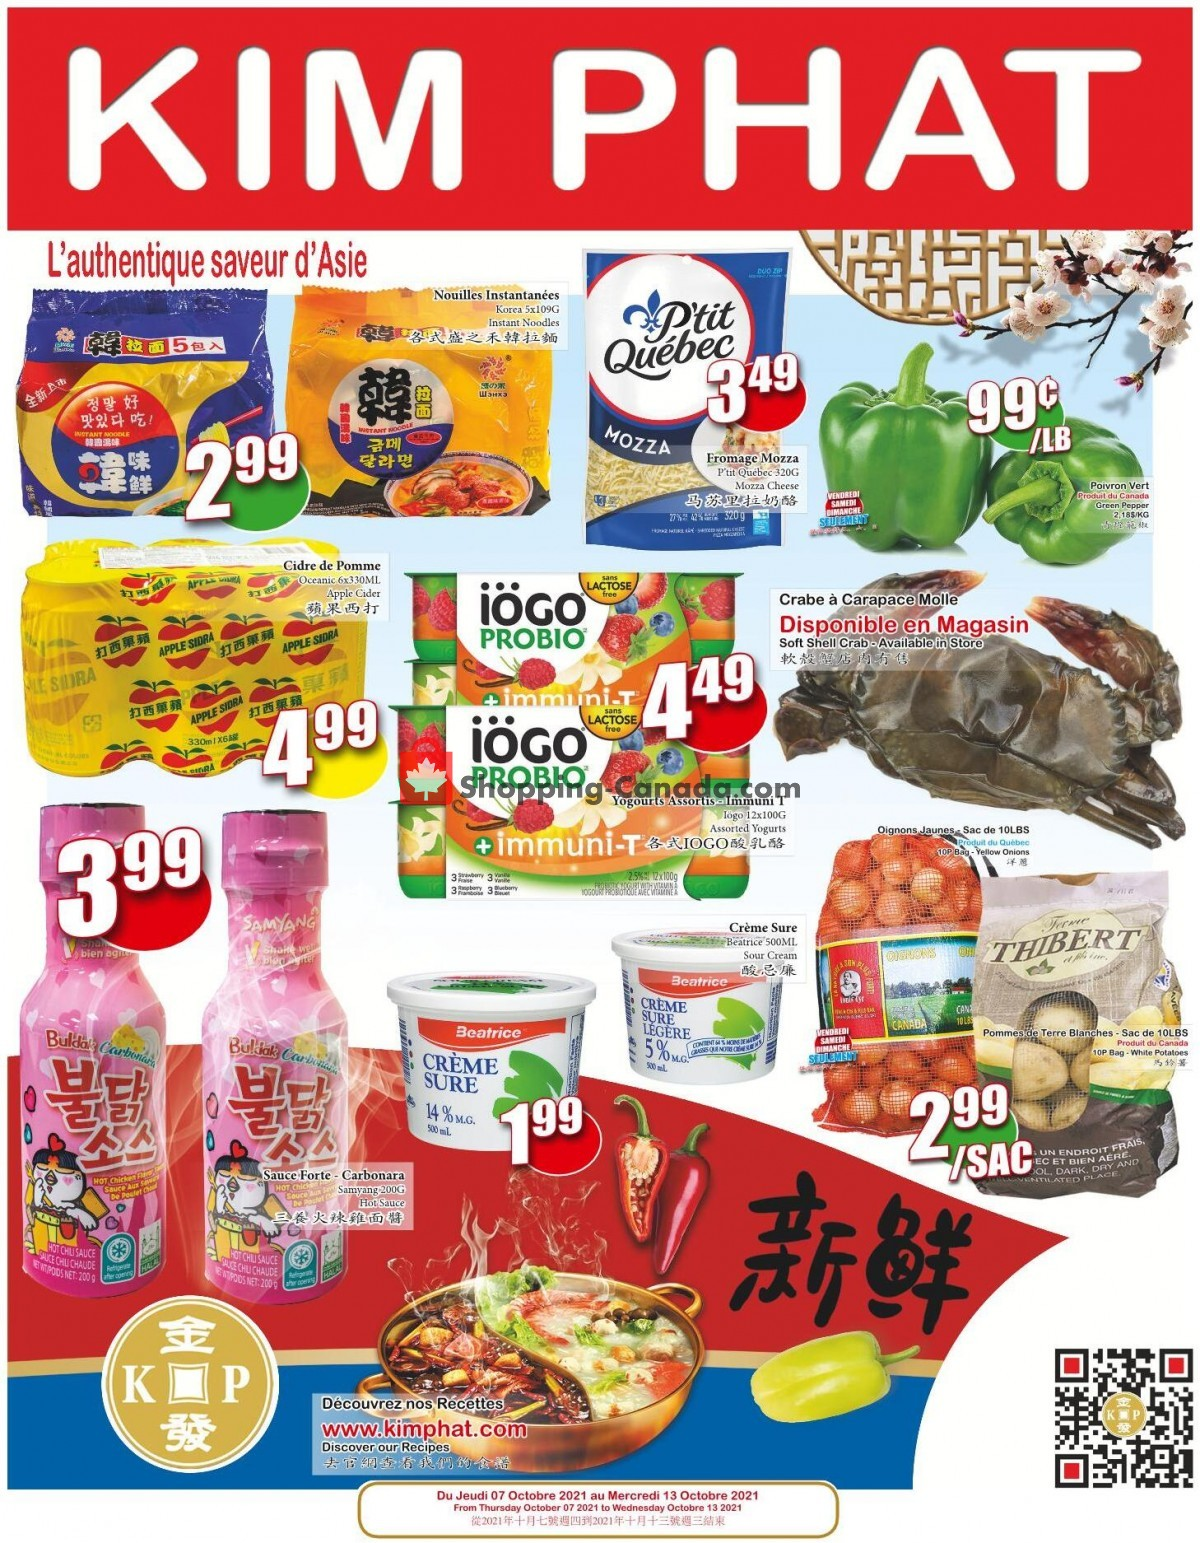 Flyer Kim Phat Canada - from Thursday October 7, 2021 to Wednesday October 13, 2021